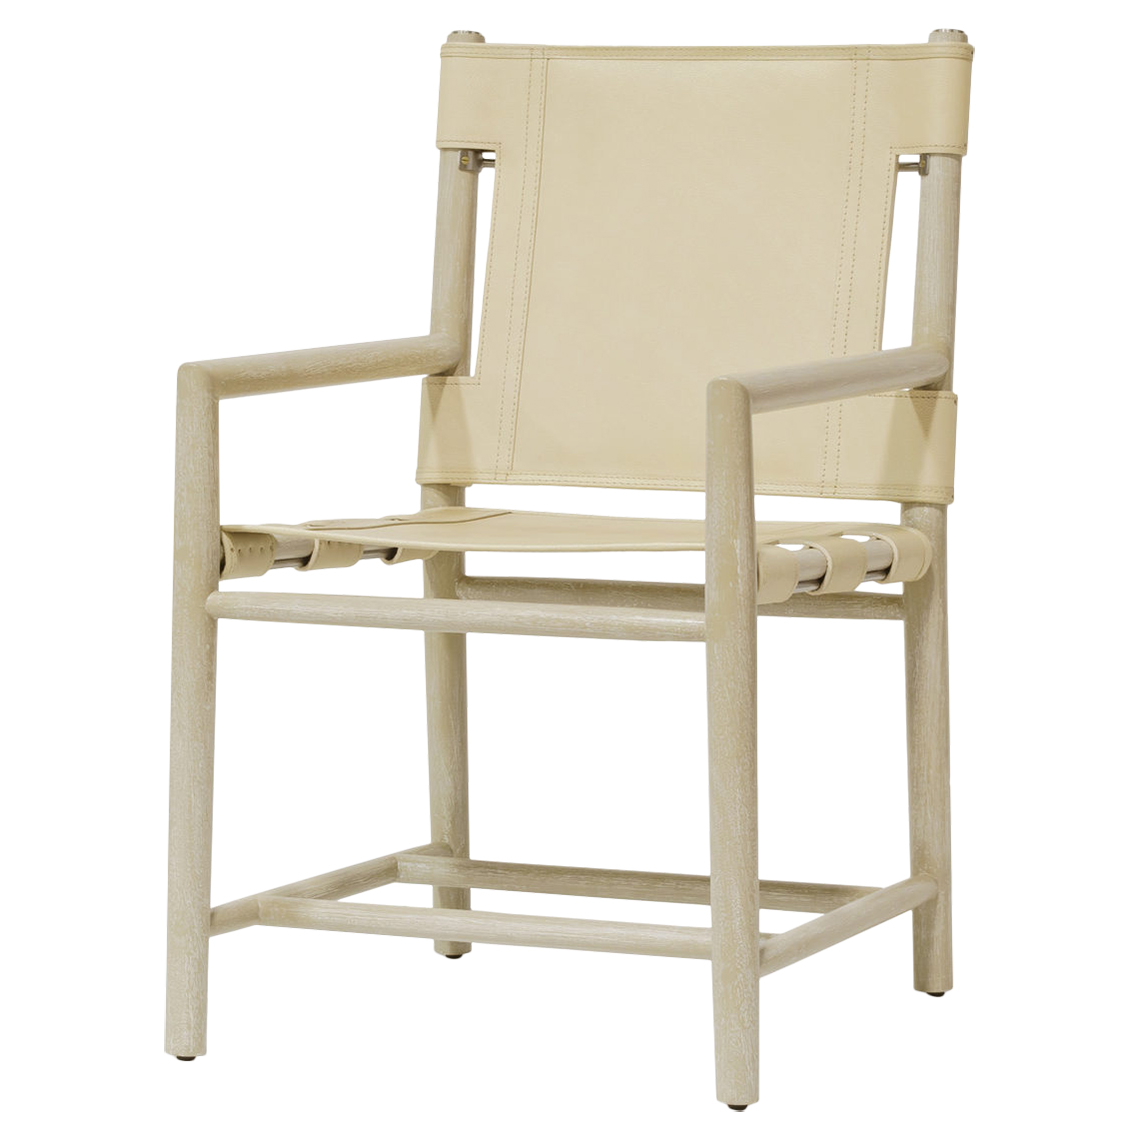 Bryton White Wash Cashew Leather Cane Armchair